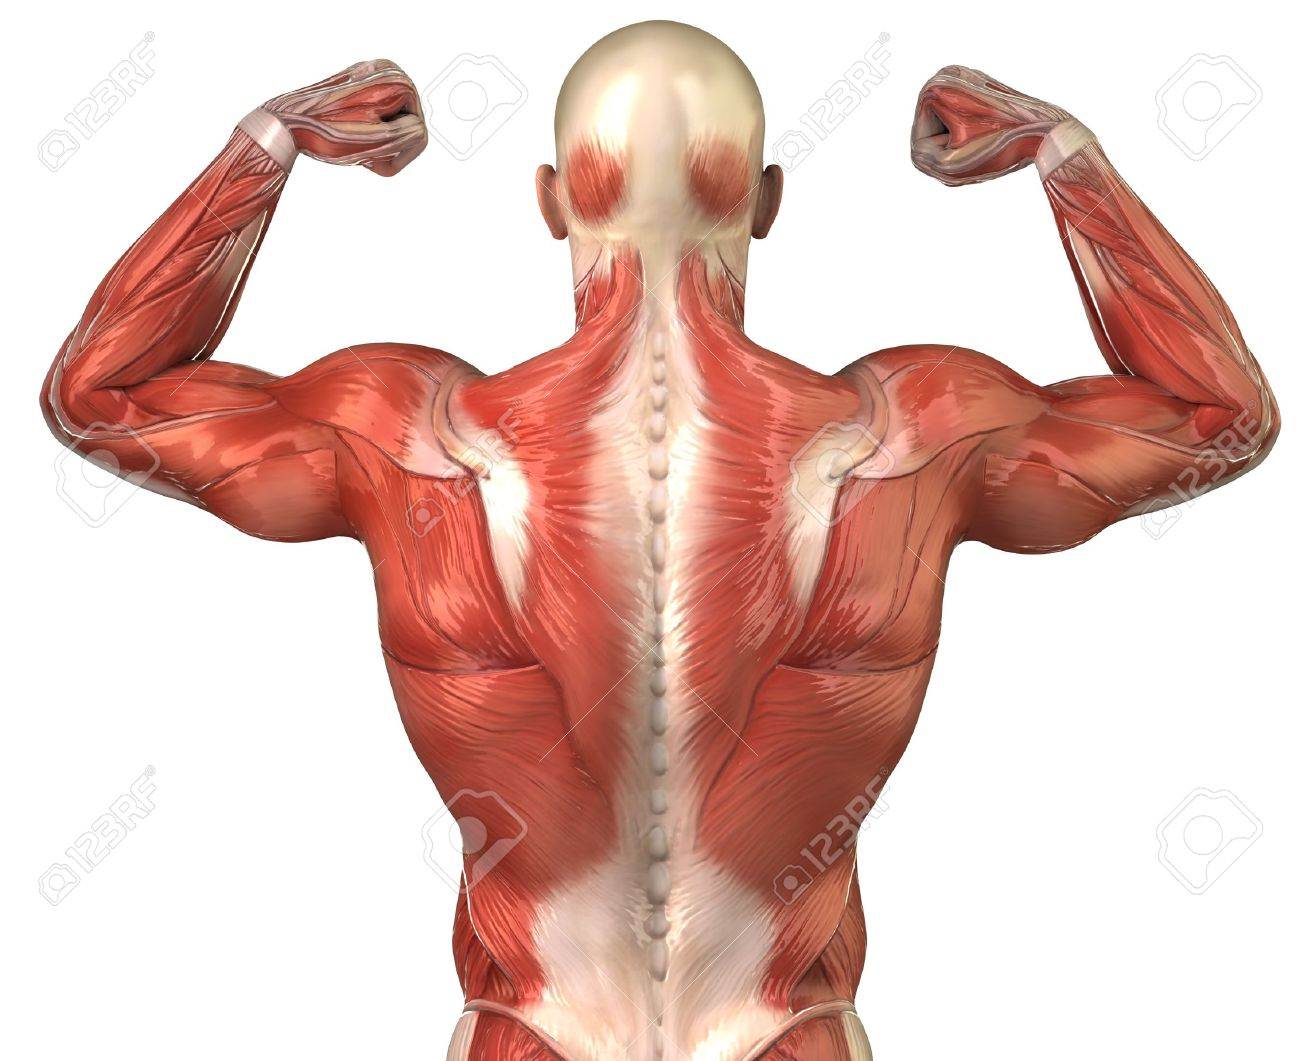 Images Of Human Muscles Defenderautofo